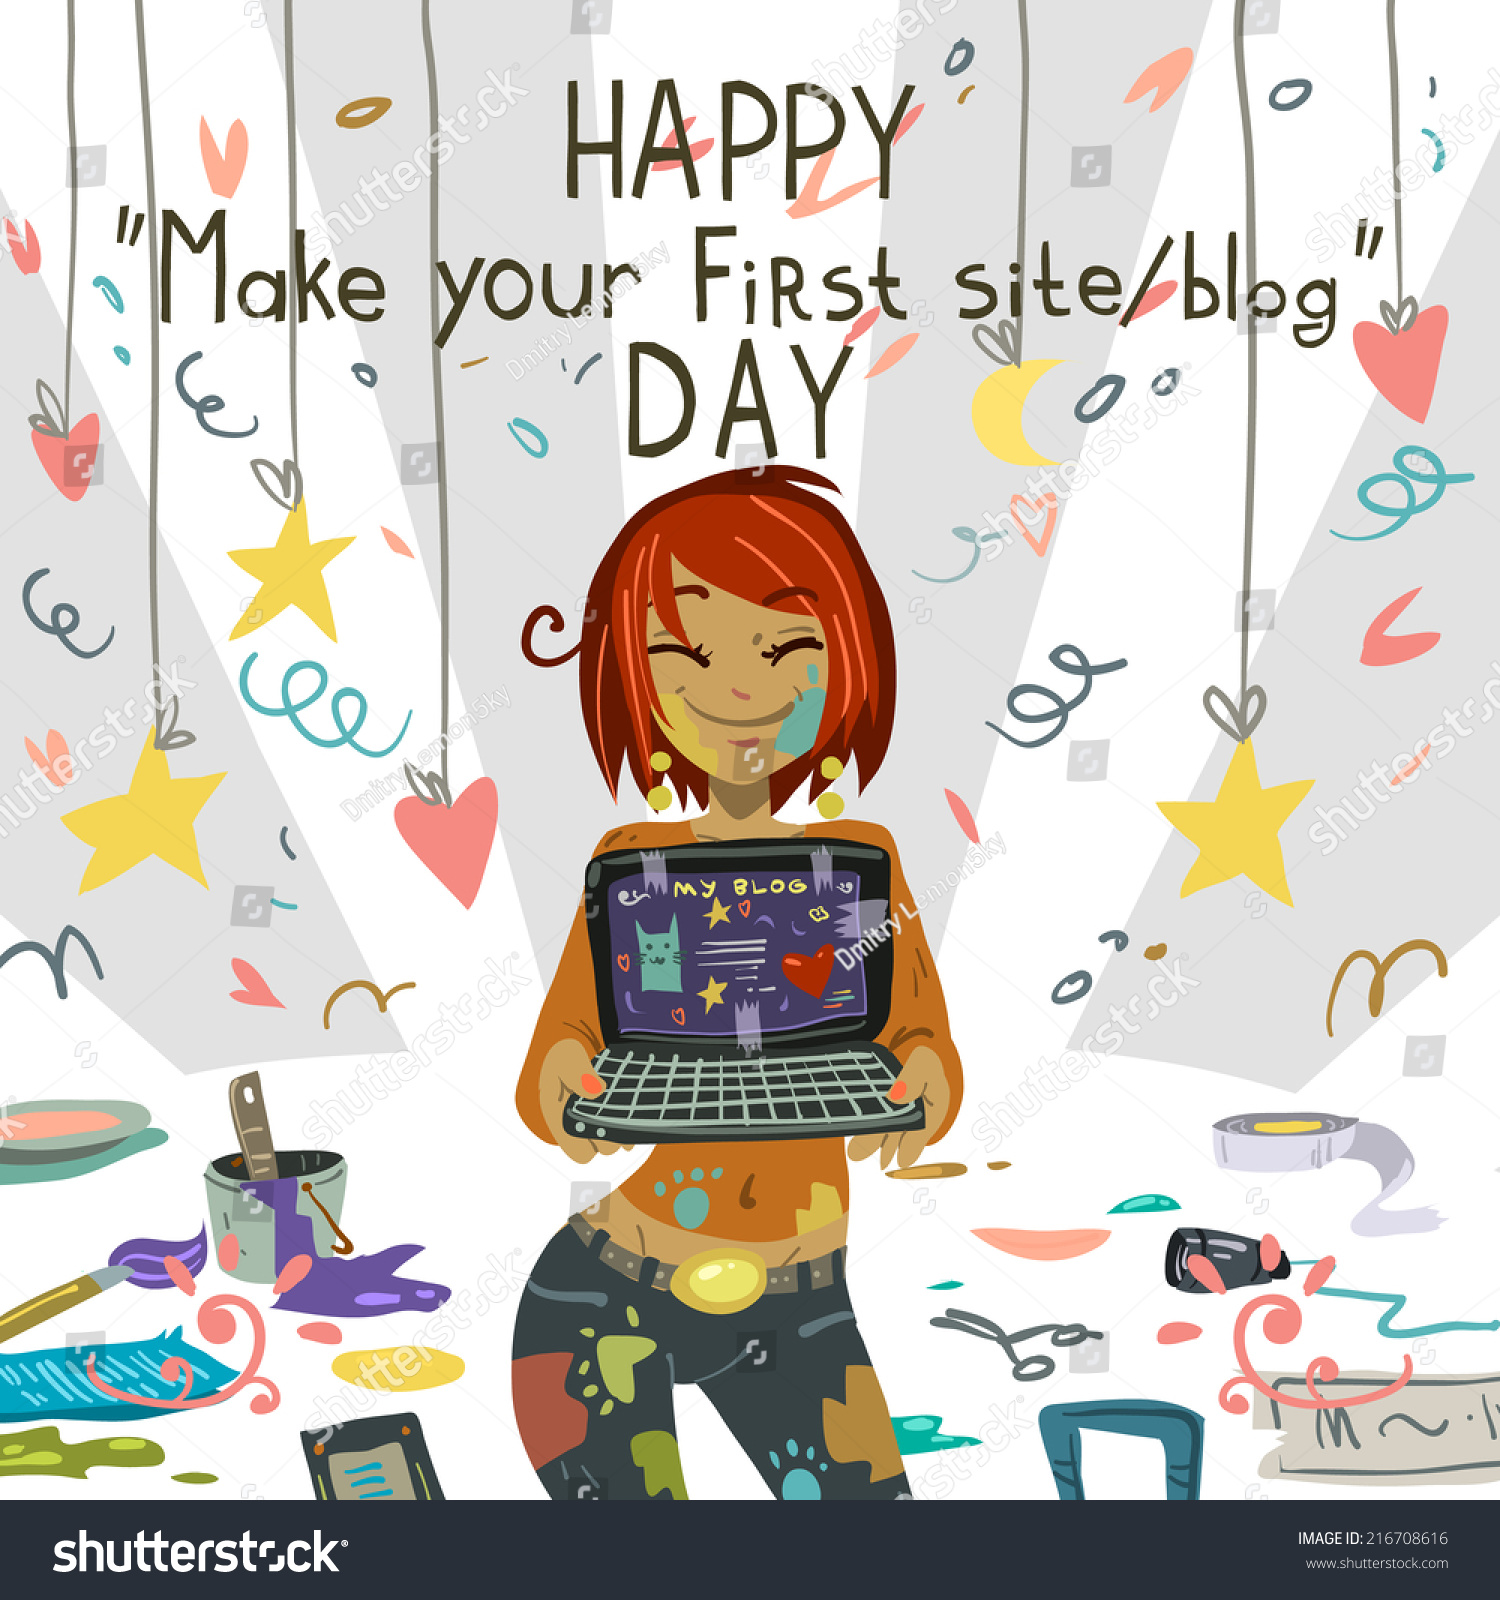 Happy Make Your First Site Blog Stock Vector 216708616 Shutterstock